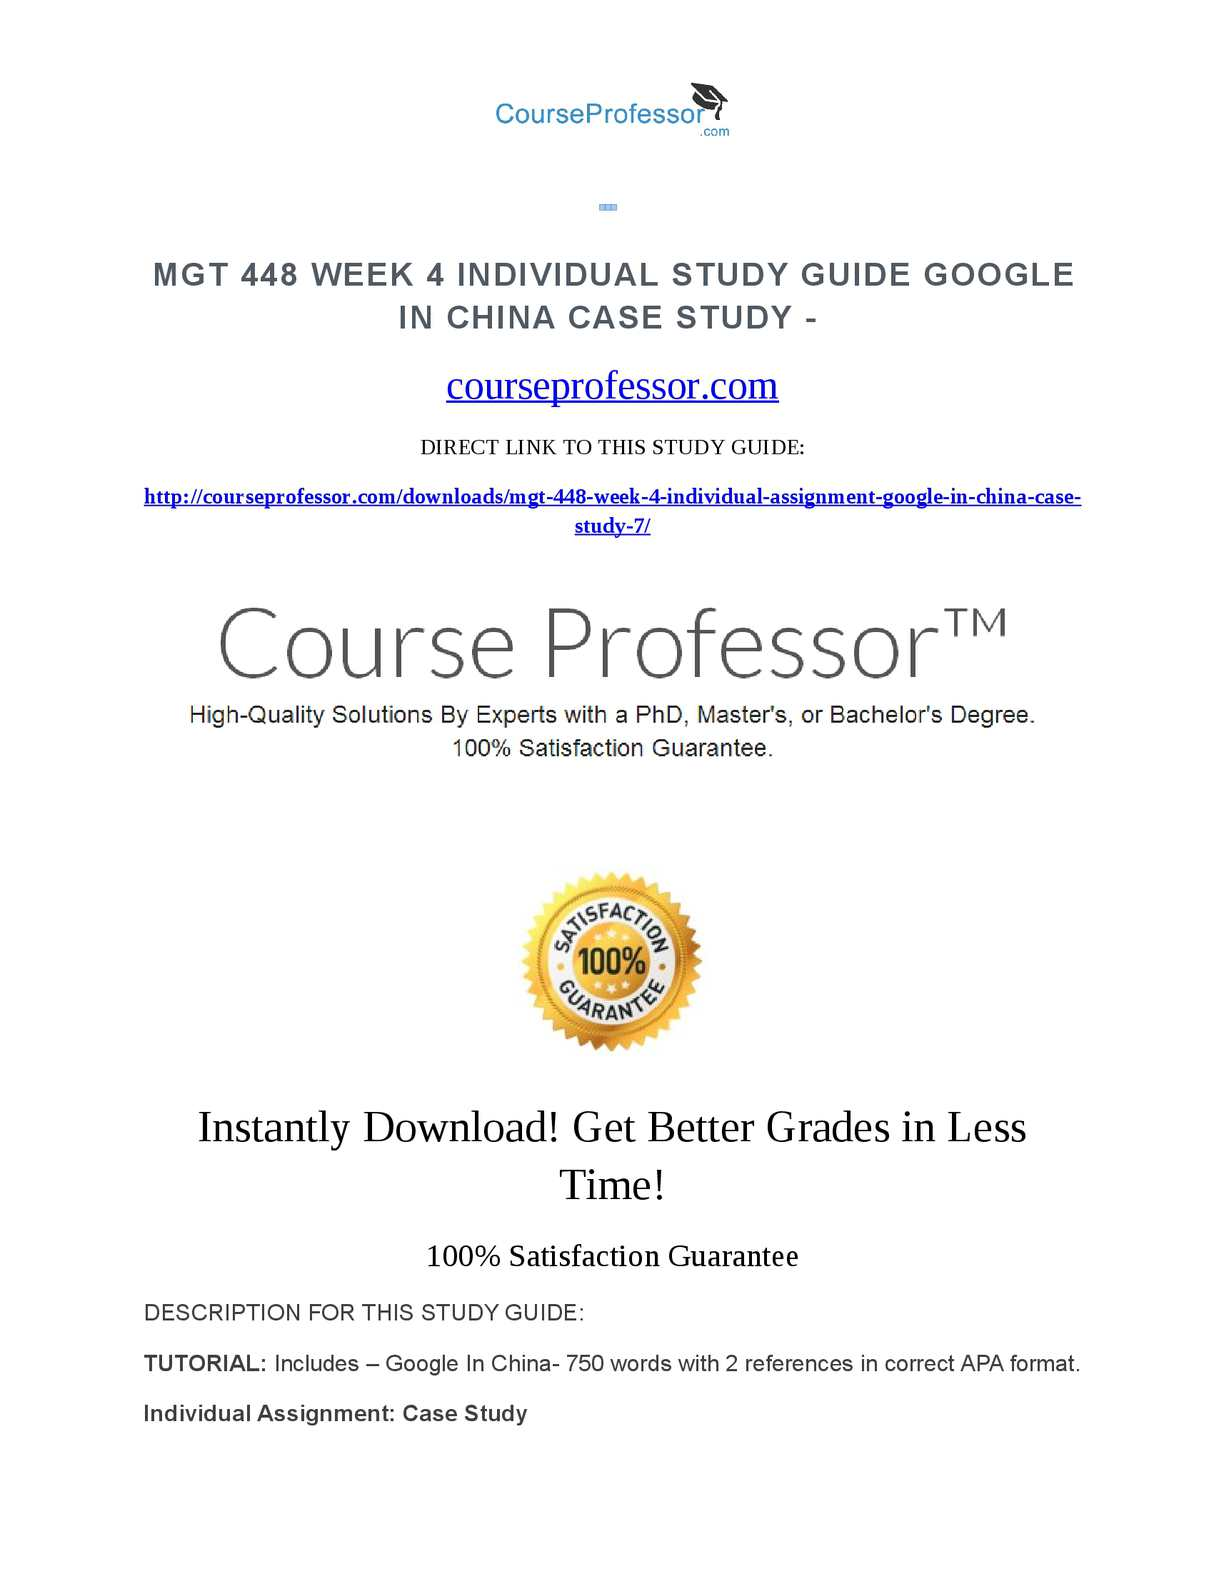 Calaméo - MGT 448 Week 4 Individual Study Guide Google in China Case